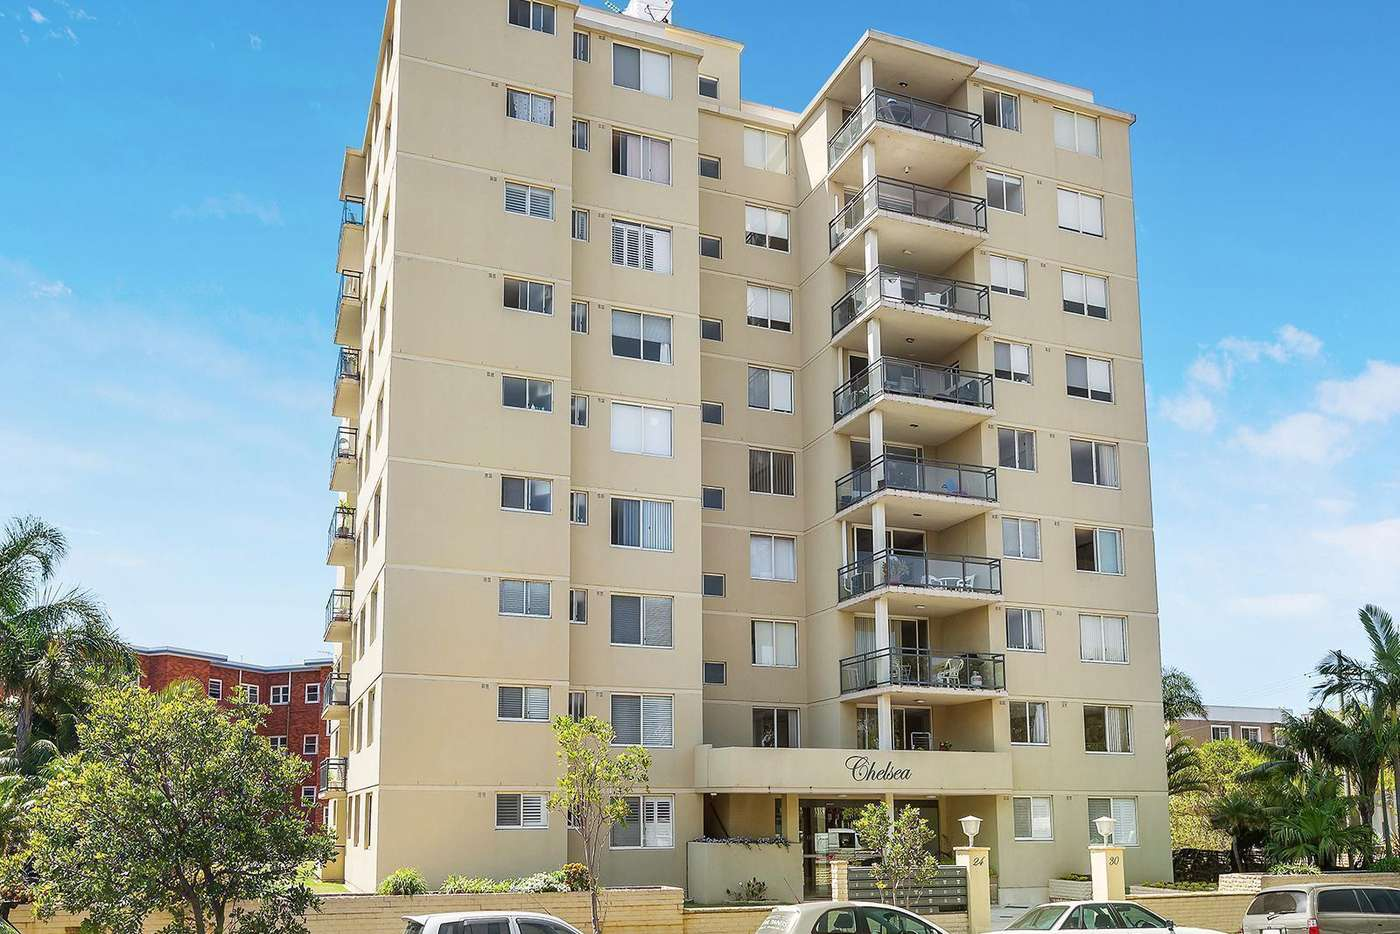 Main view of Homely apartment listing, 36/24 Parramatta Street, Cronulla NSW 2230